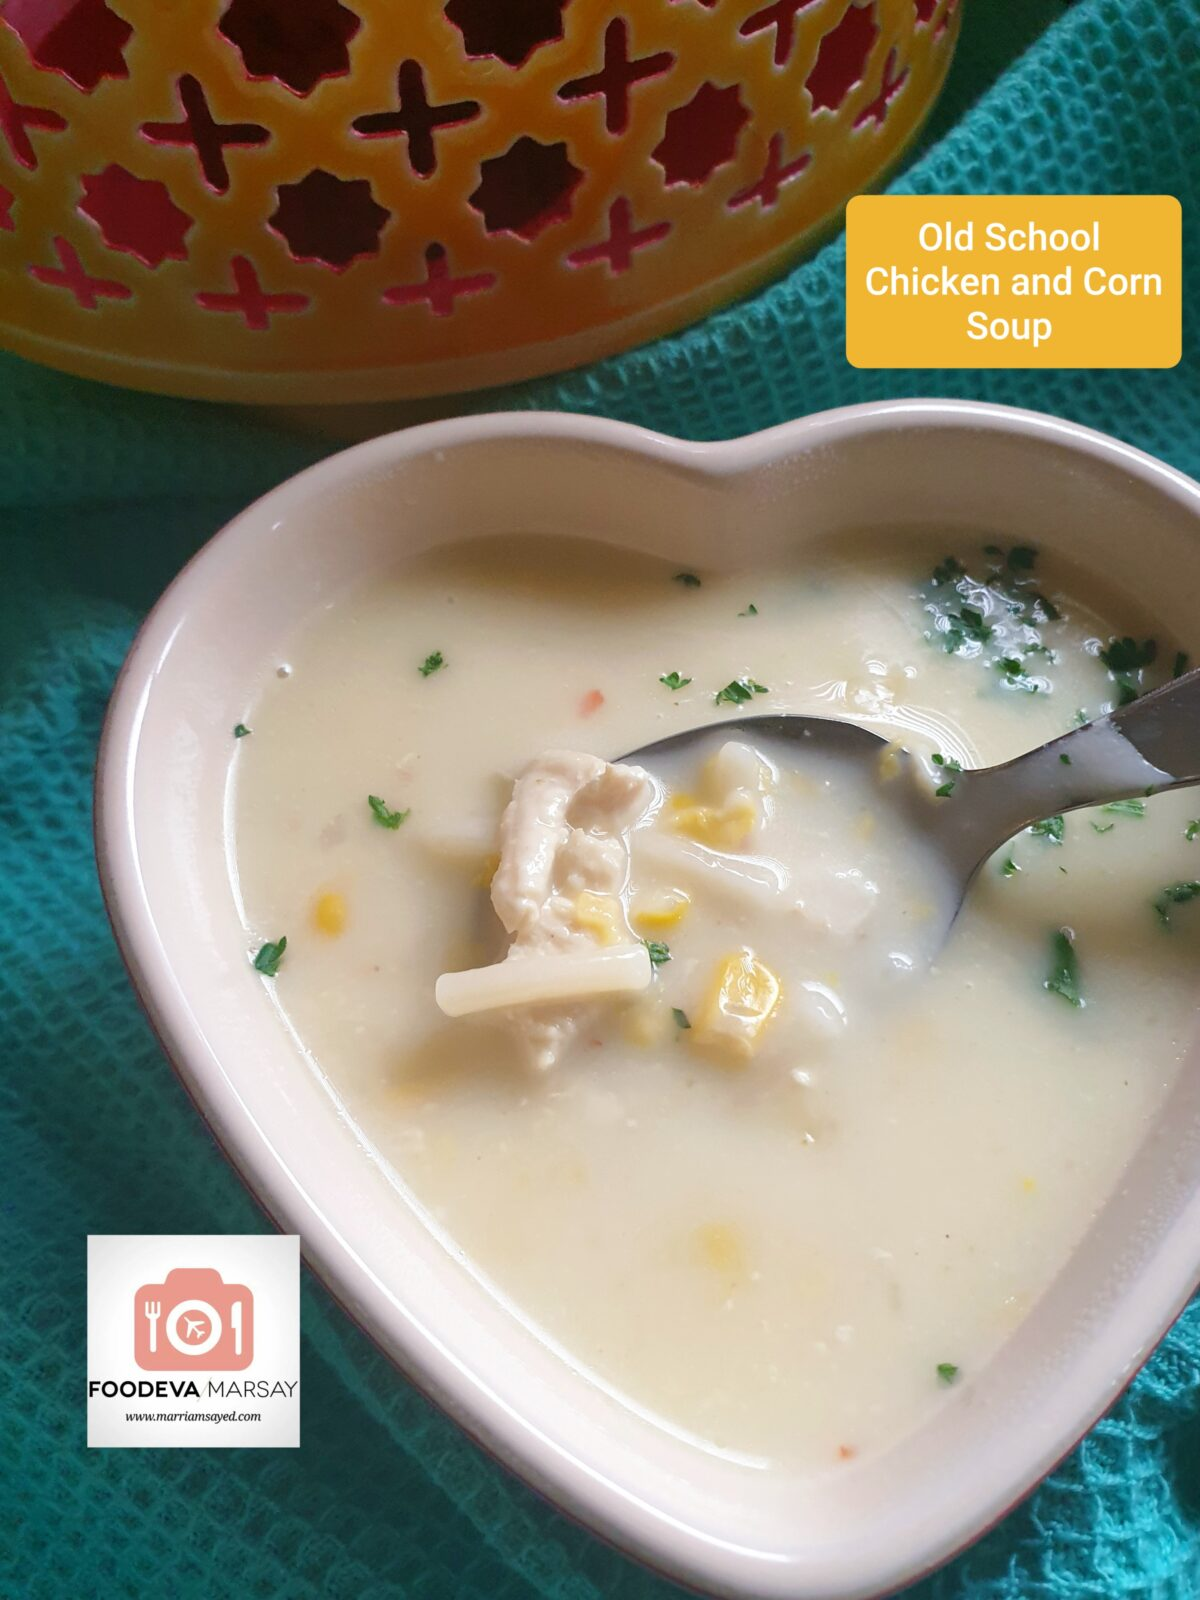 old-school-chicken-and-corn-soup1-1200x1600.jpg